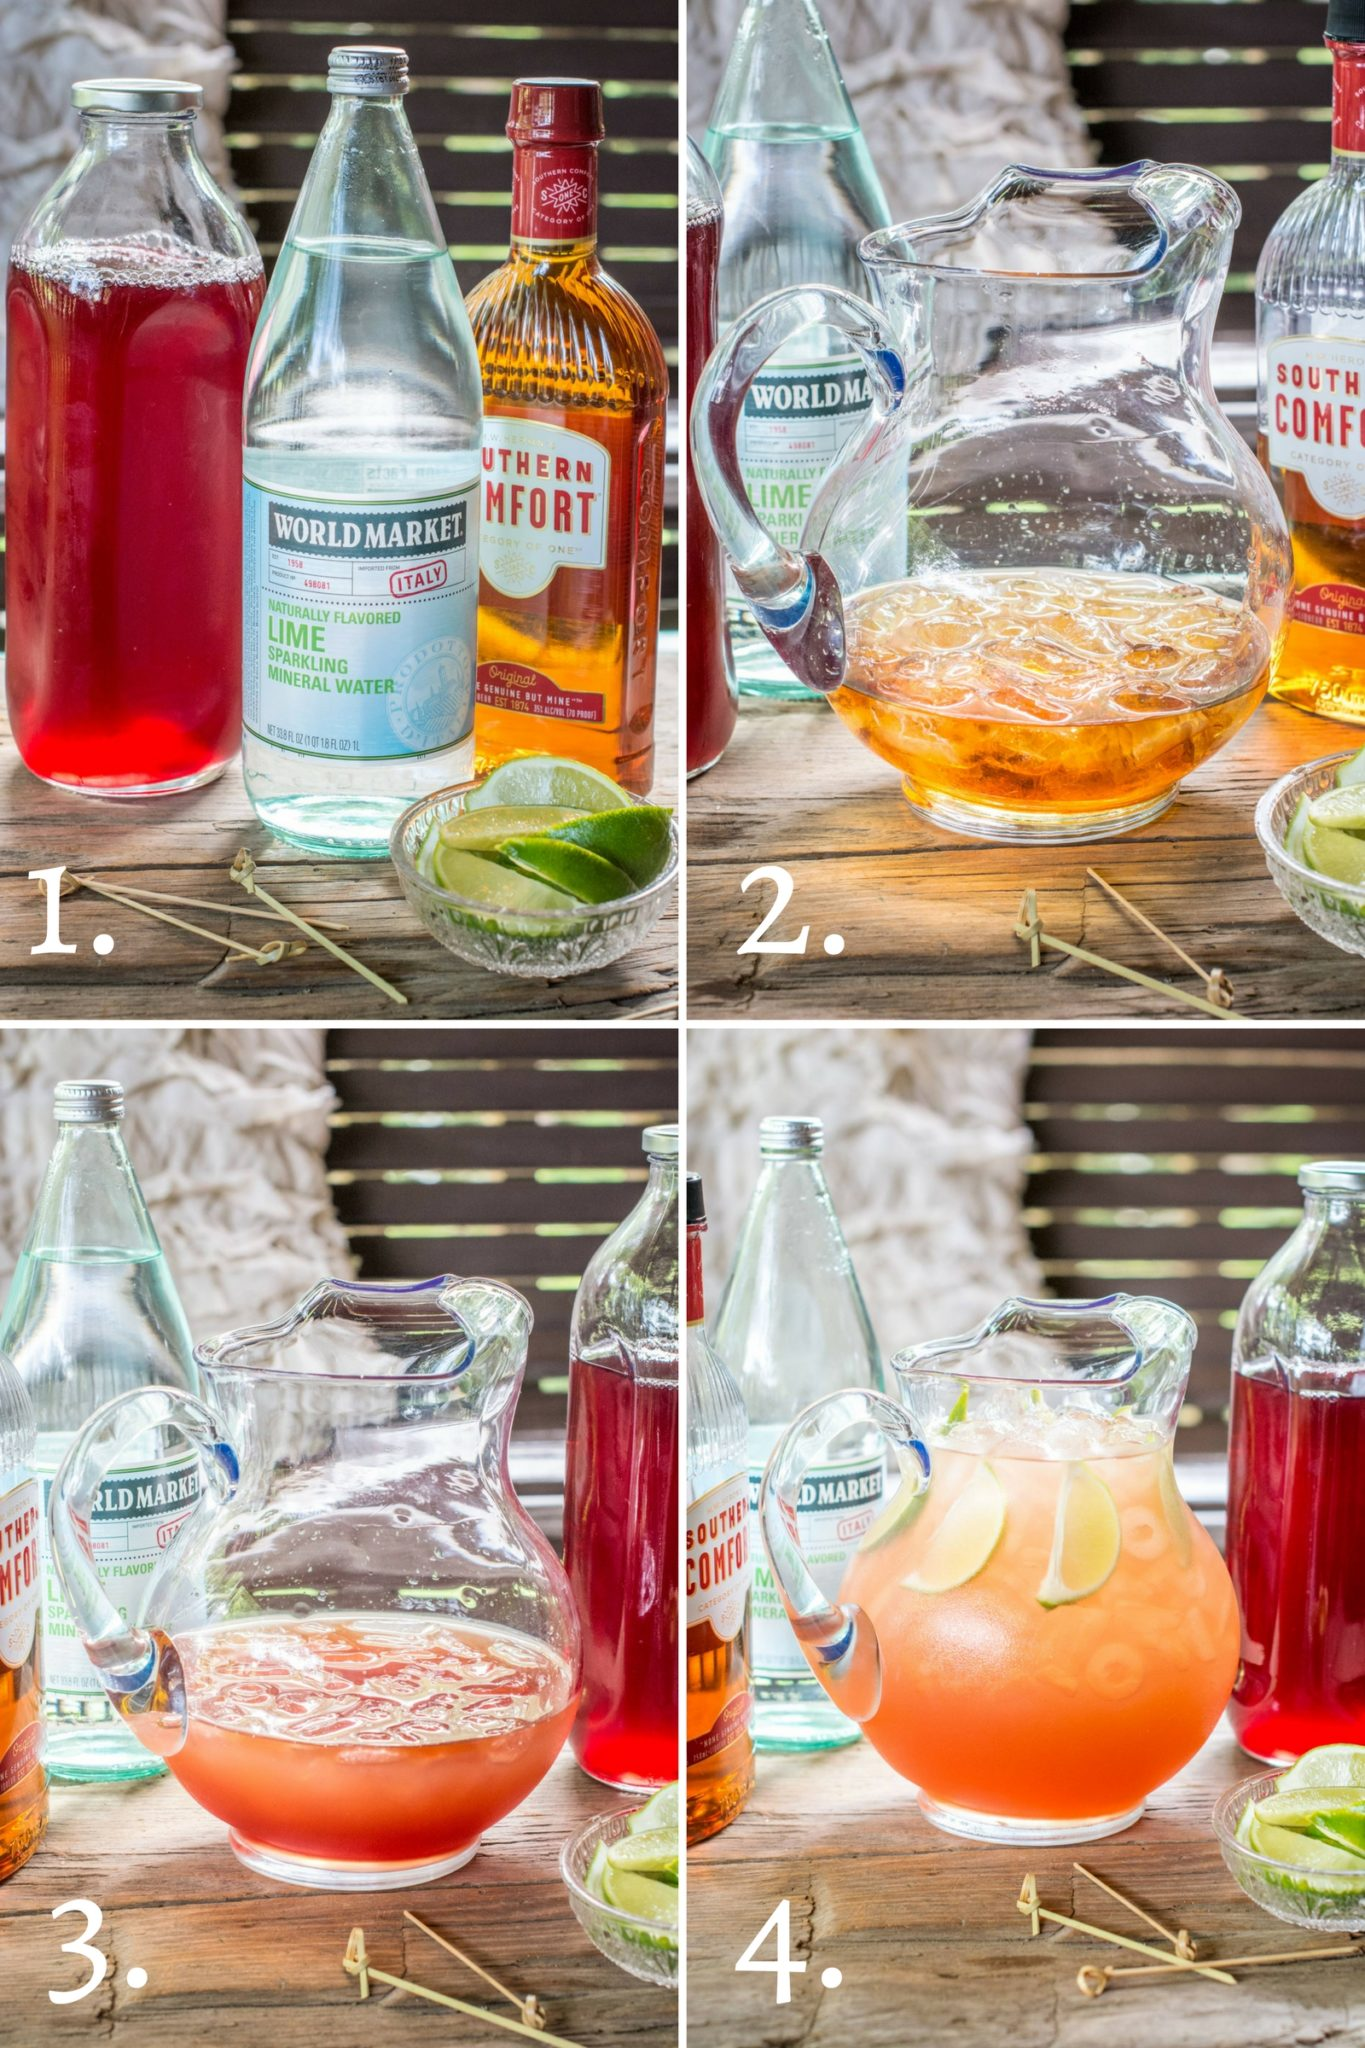 Step by step on making the Scarlet O'Hara Cocktail punch recipe.